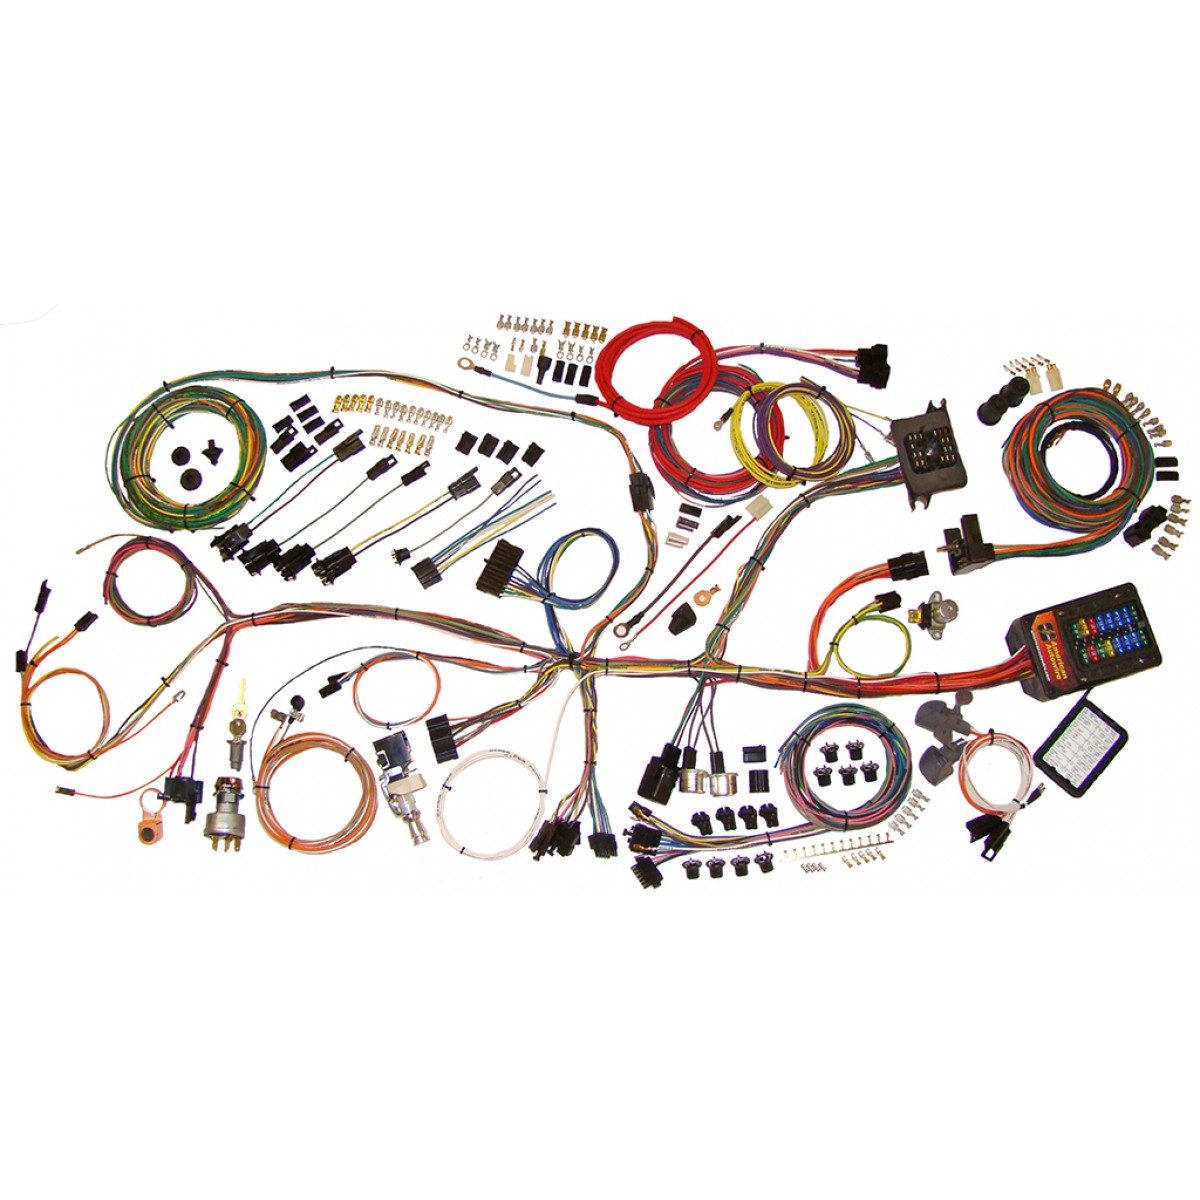 67 Nova Wiring Harness Auto Electrical Diagram 72 Interior 1962 1967 Complete Kit